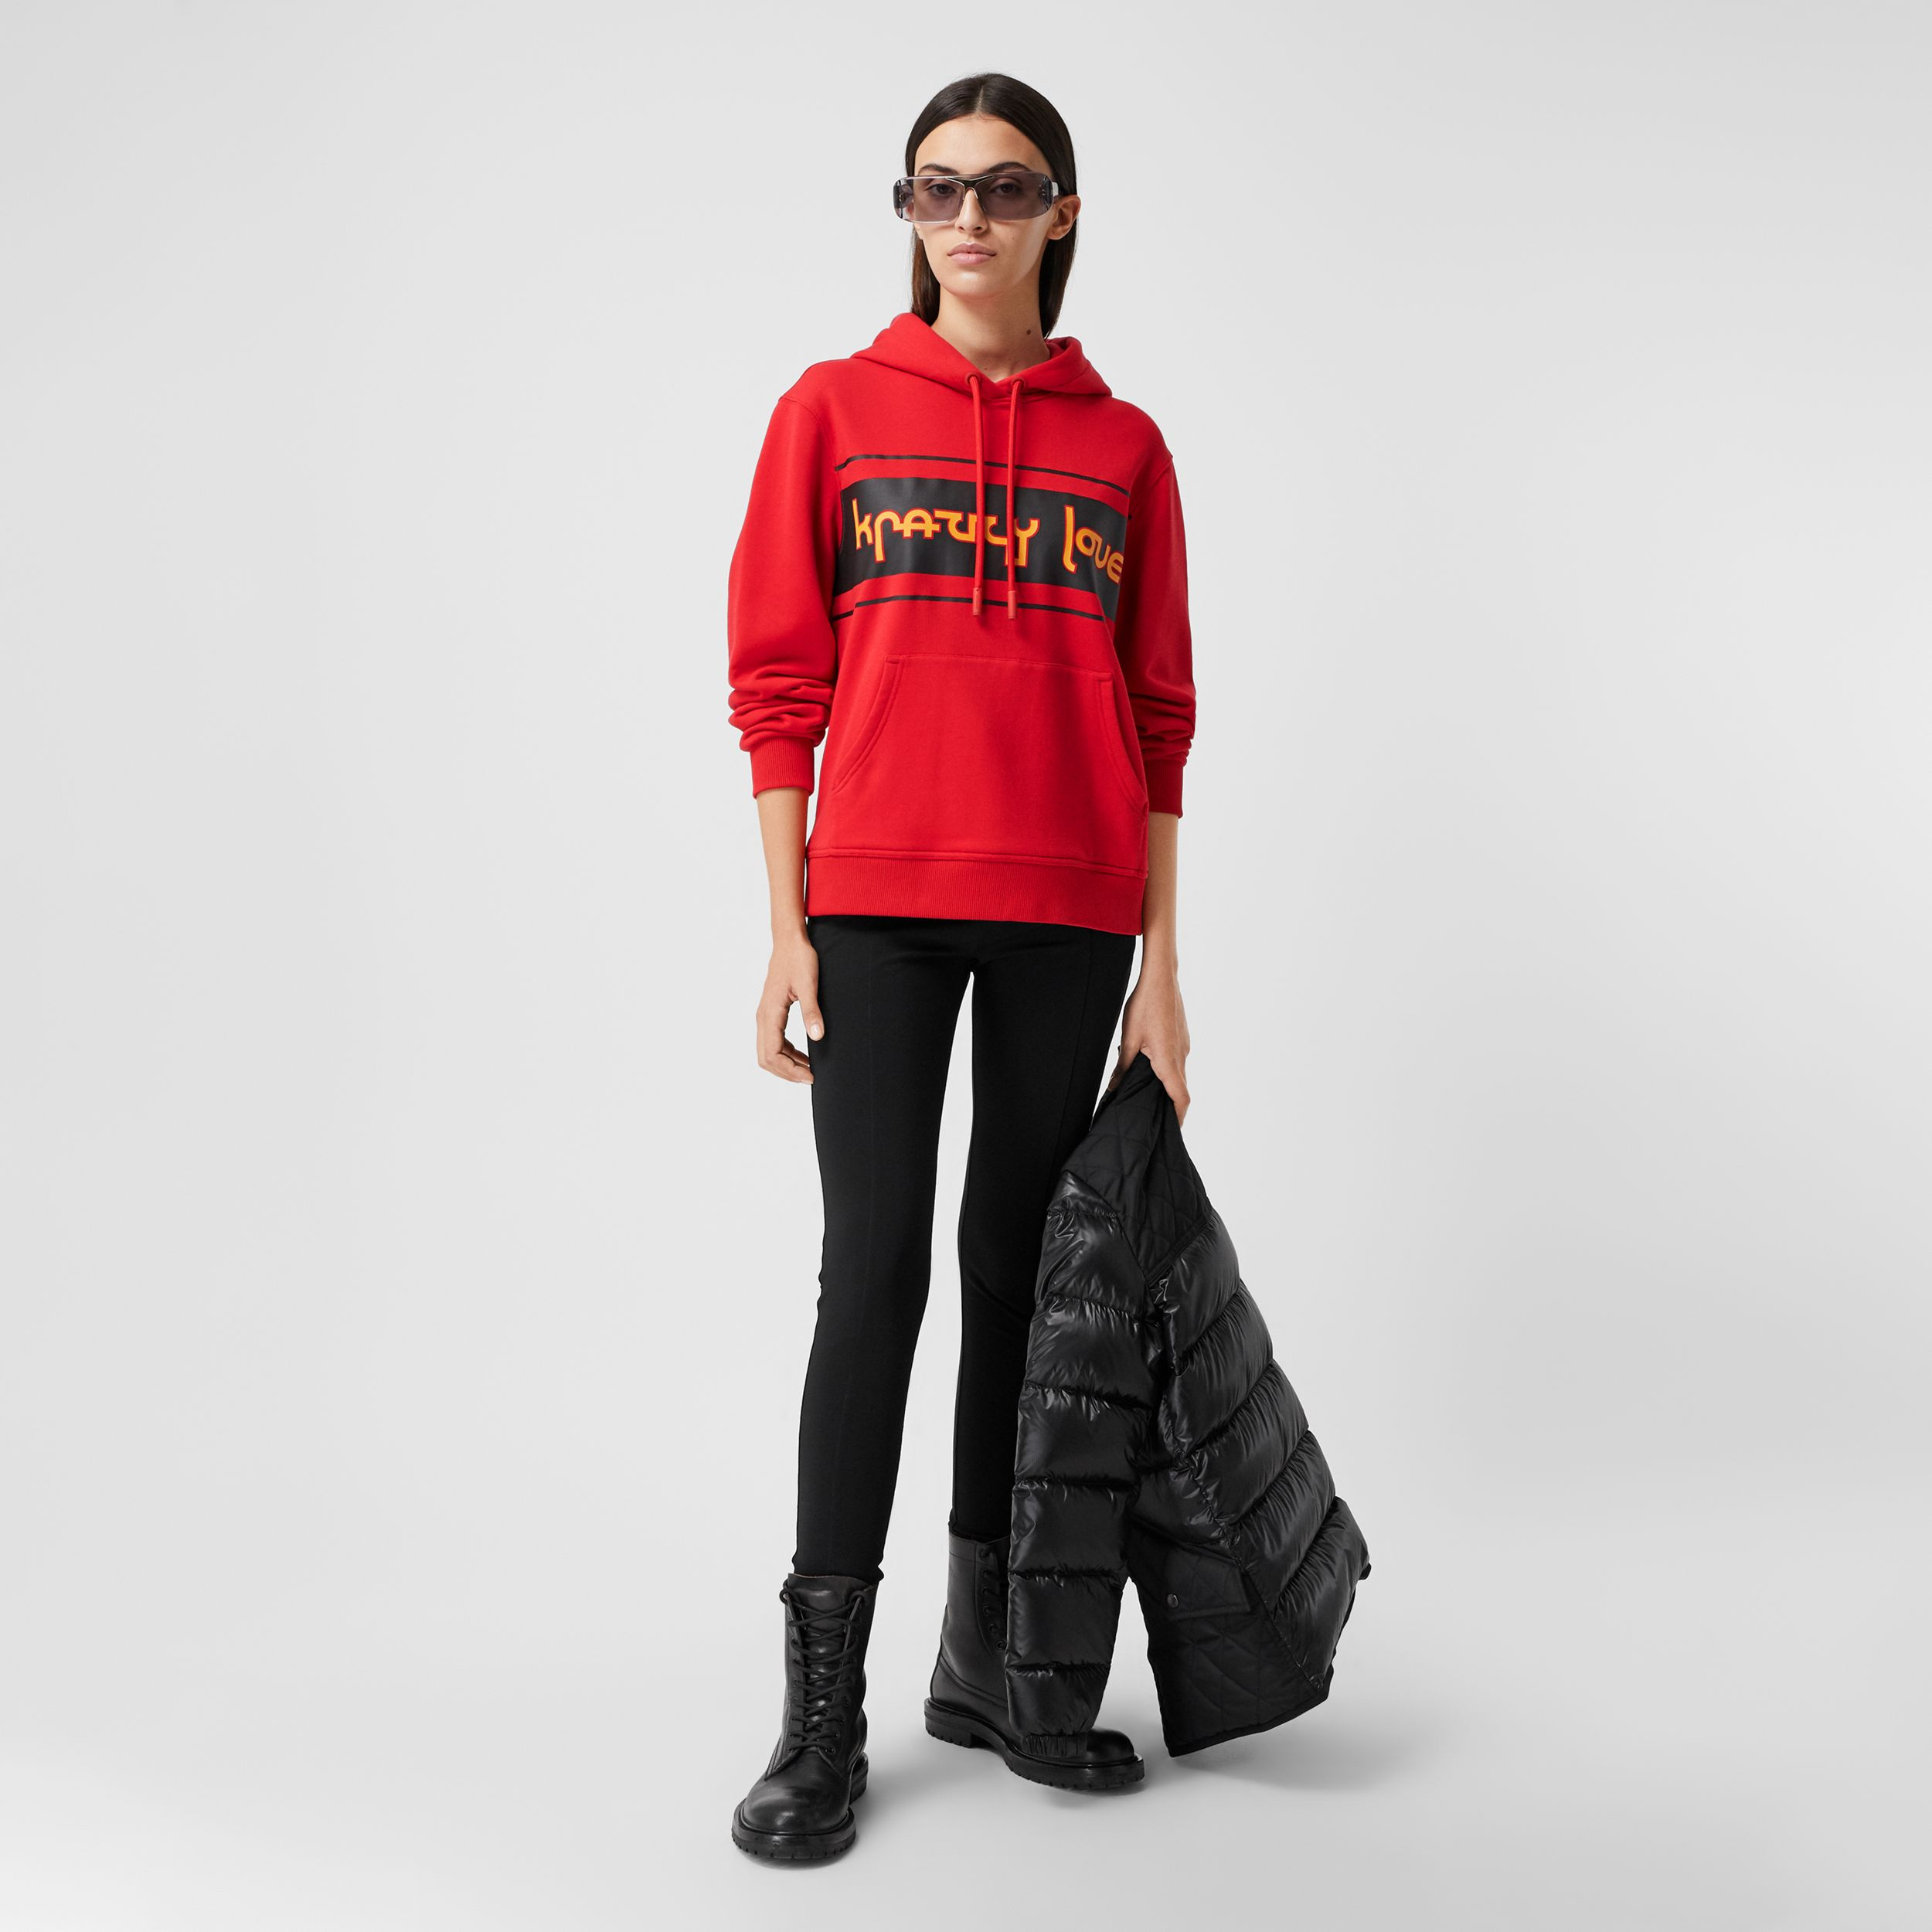 Slogan Print Cotton Oversized Hoodie in Bright Red - Women | Burberry - 1